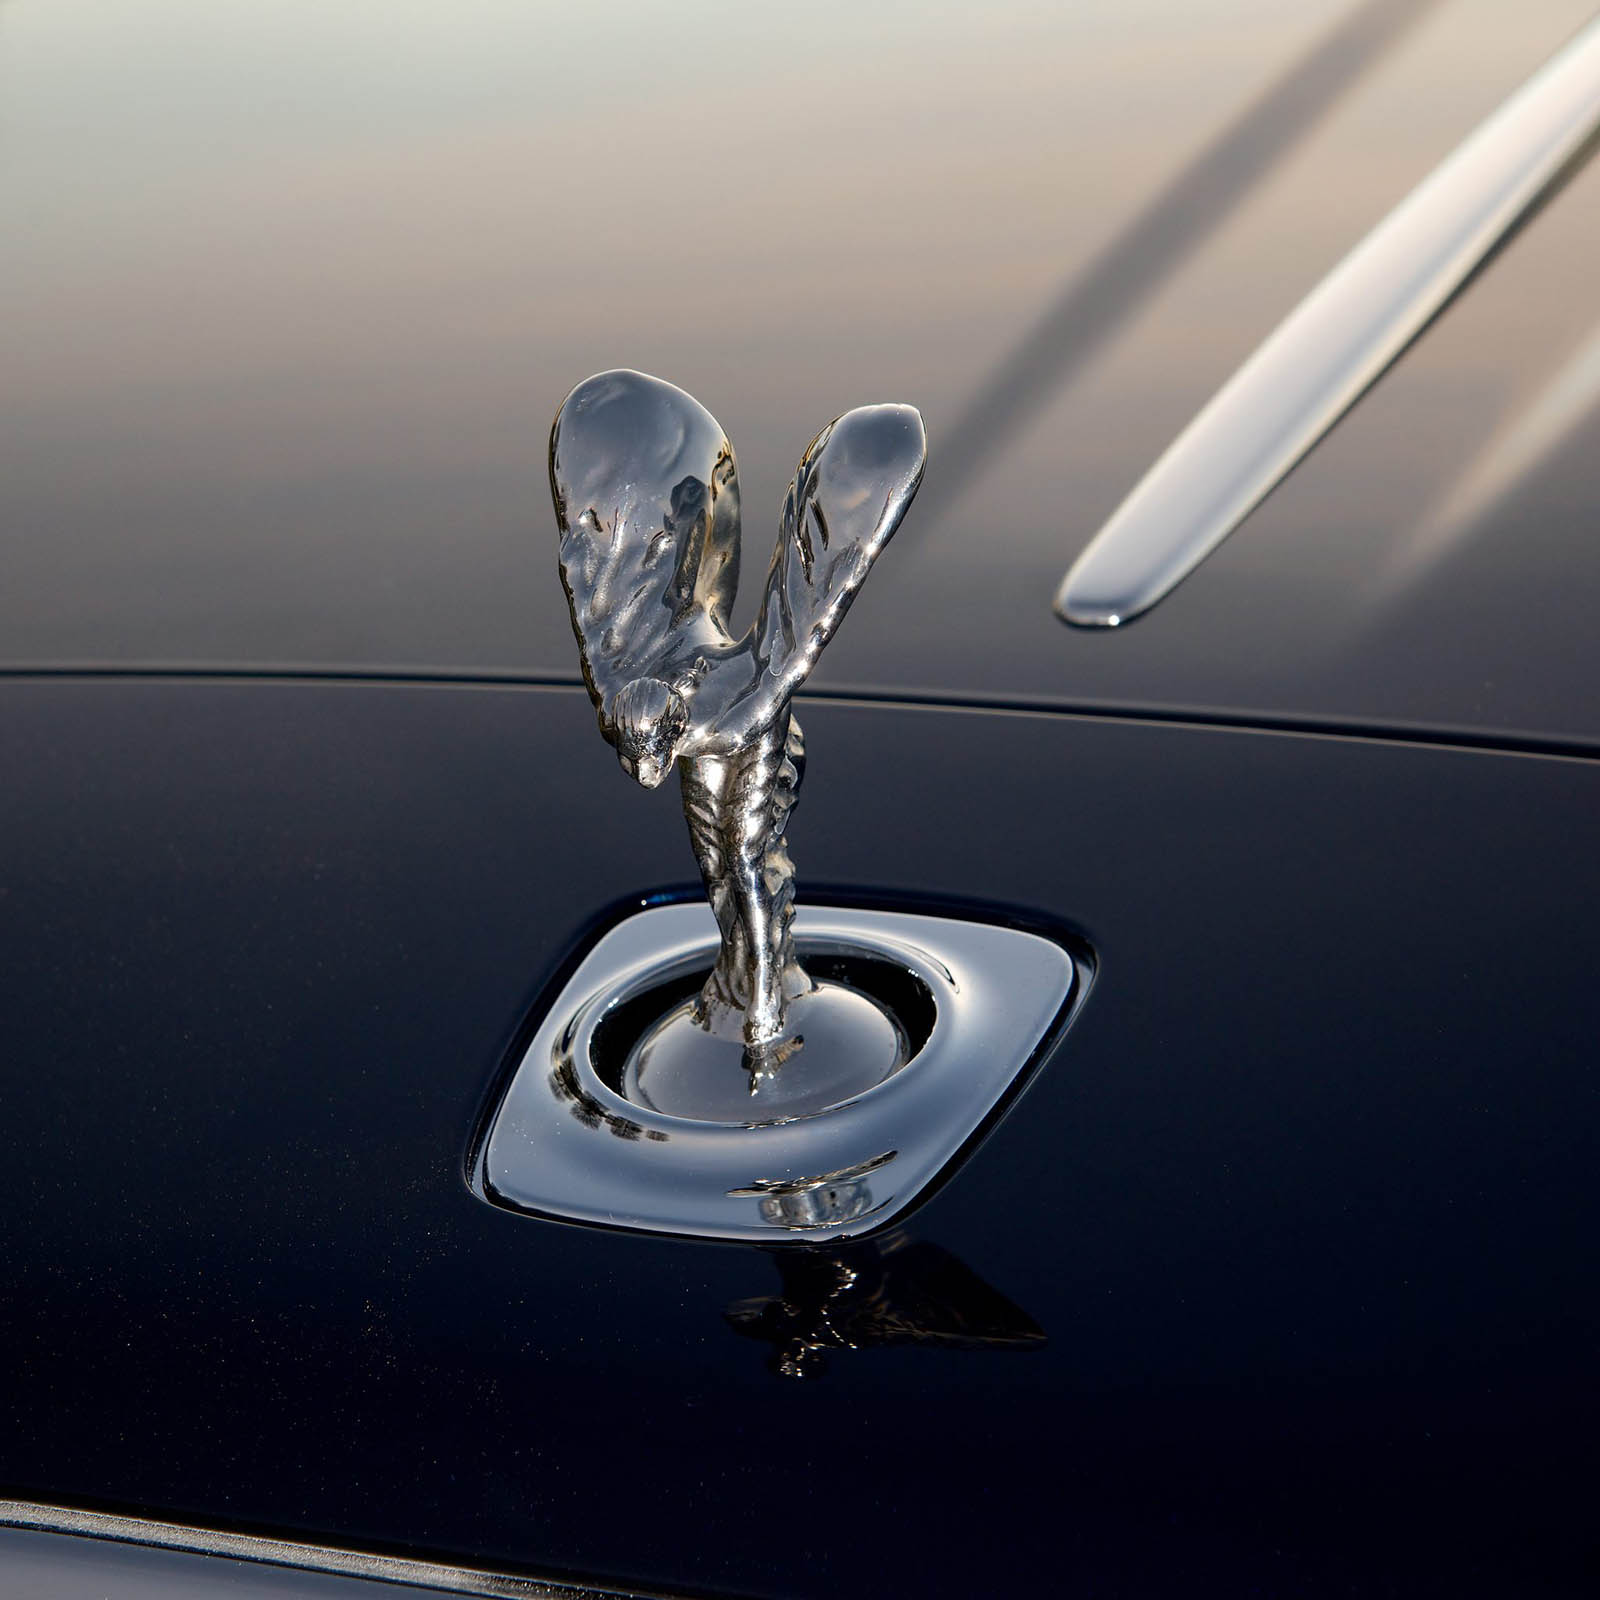 rolls-royce-Dawn-inspired-by-Pearling-Tradition-09